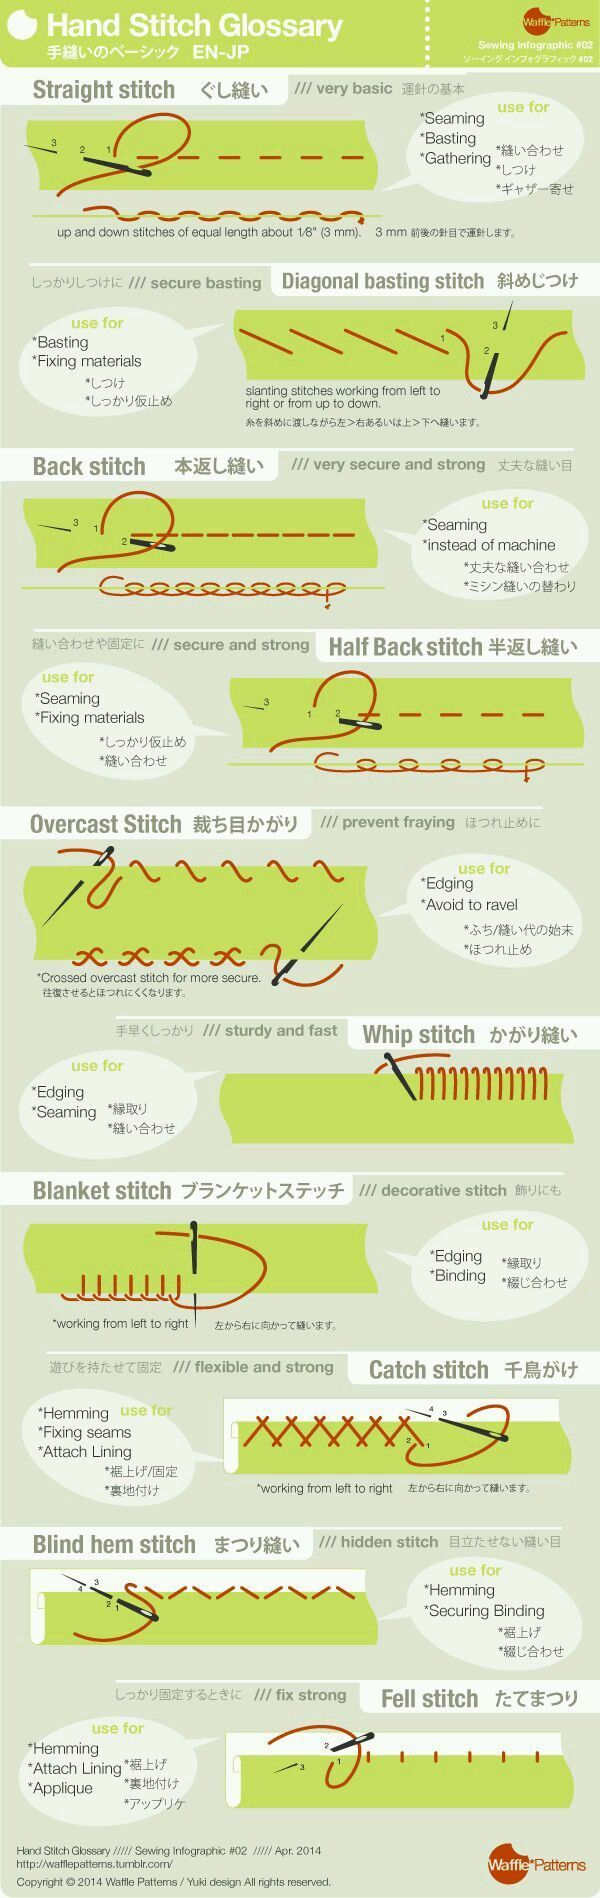 Hand Stitch Glossary - How to stitch up knitting projects